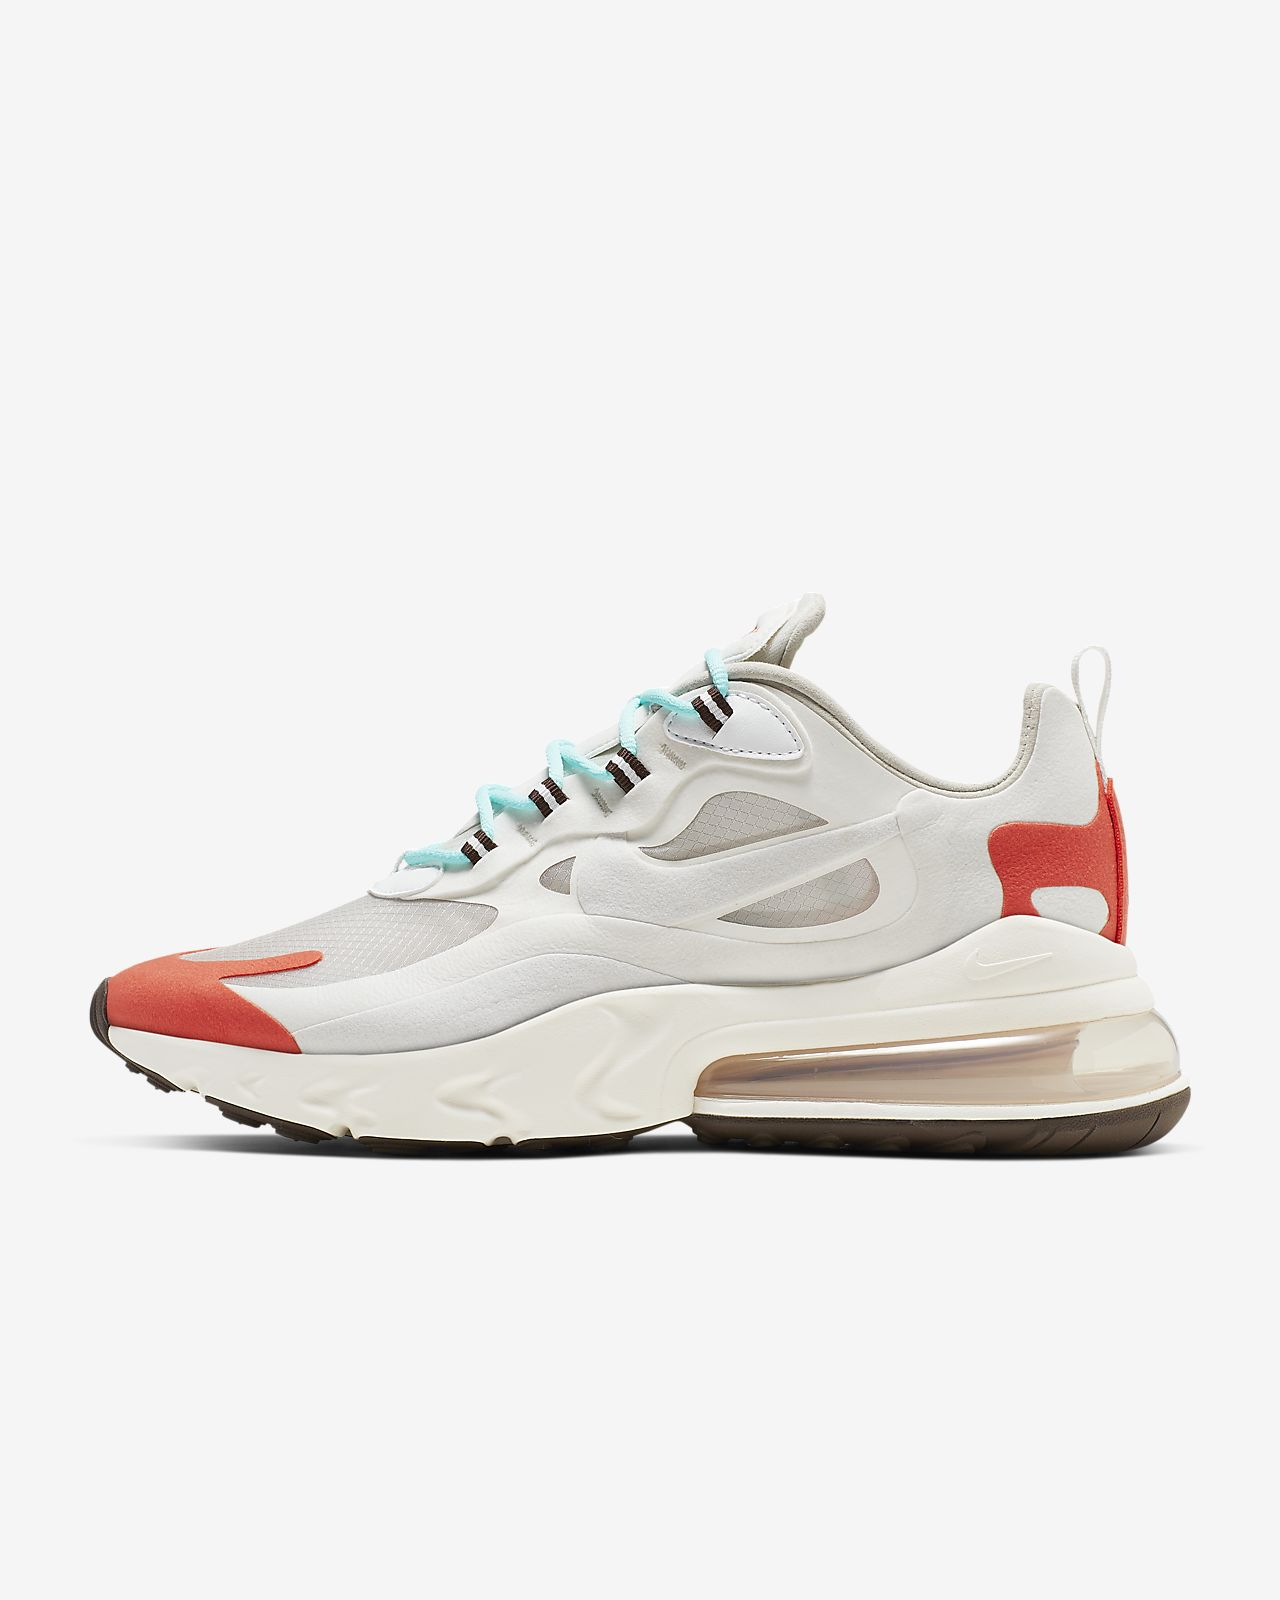 Nike Air Max 270 React (Mid-Century Art) Men's Shoes